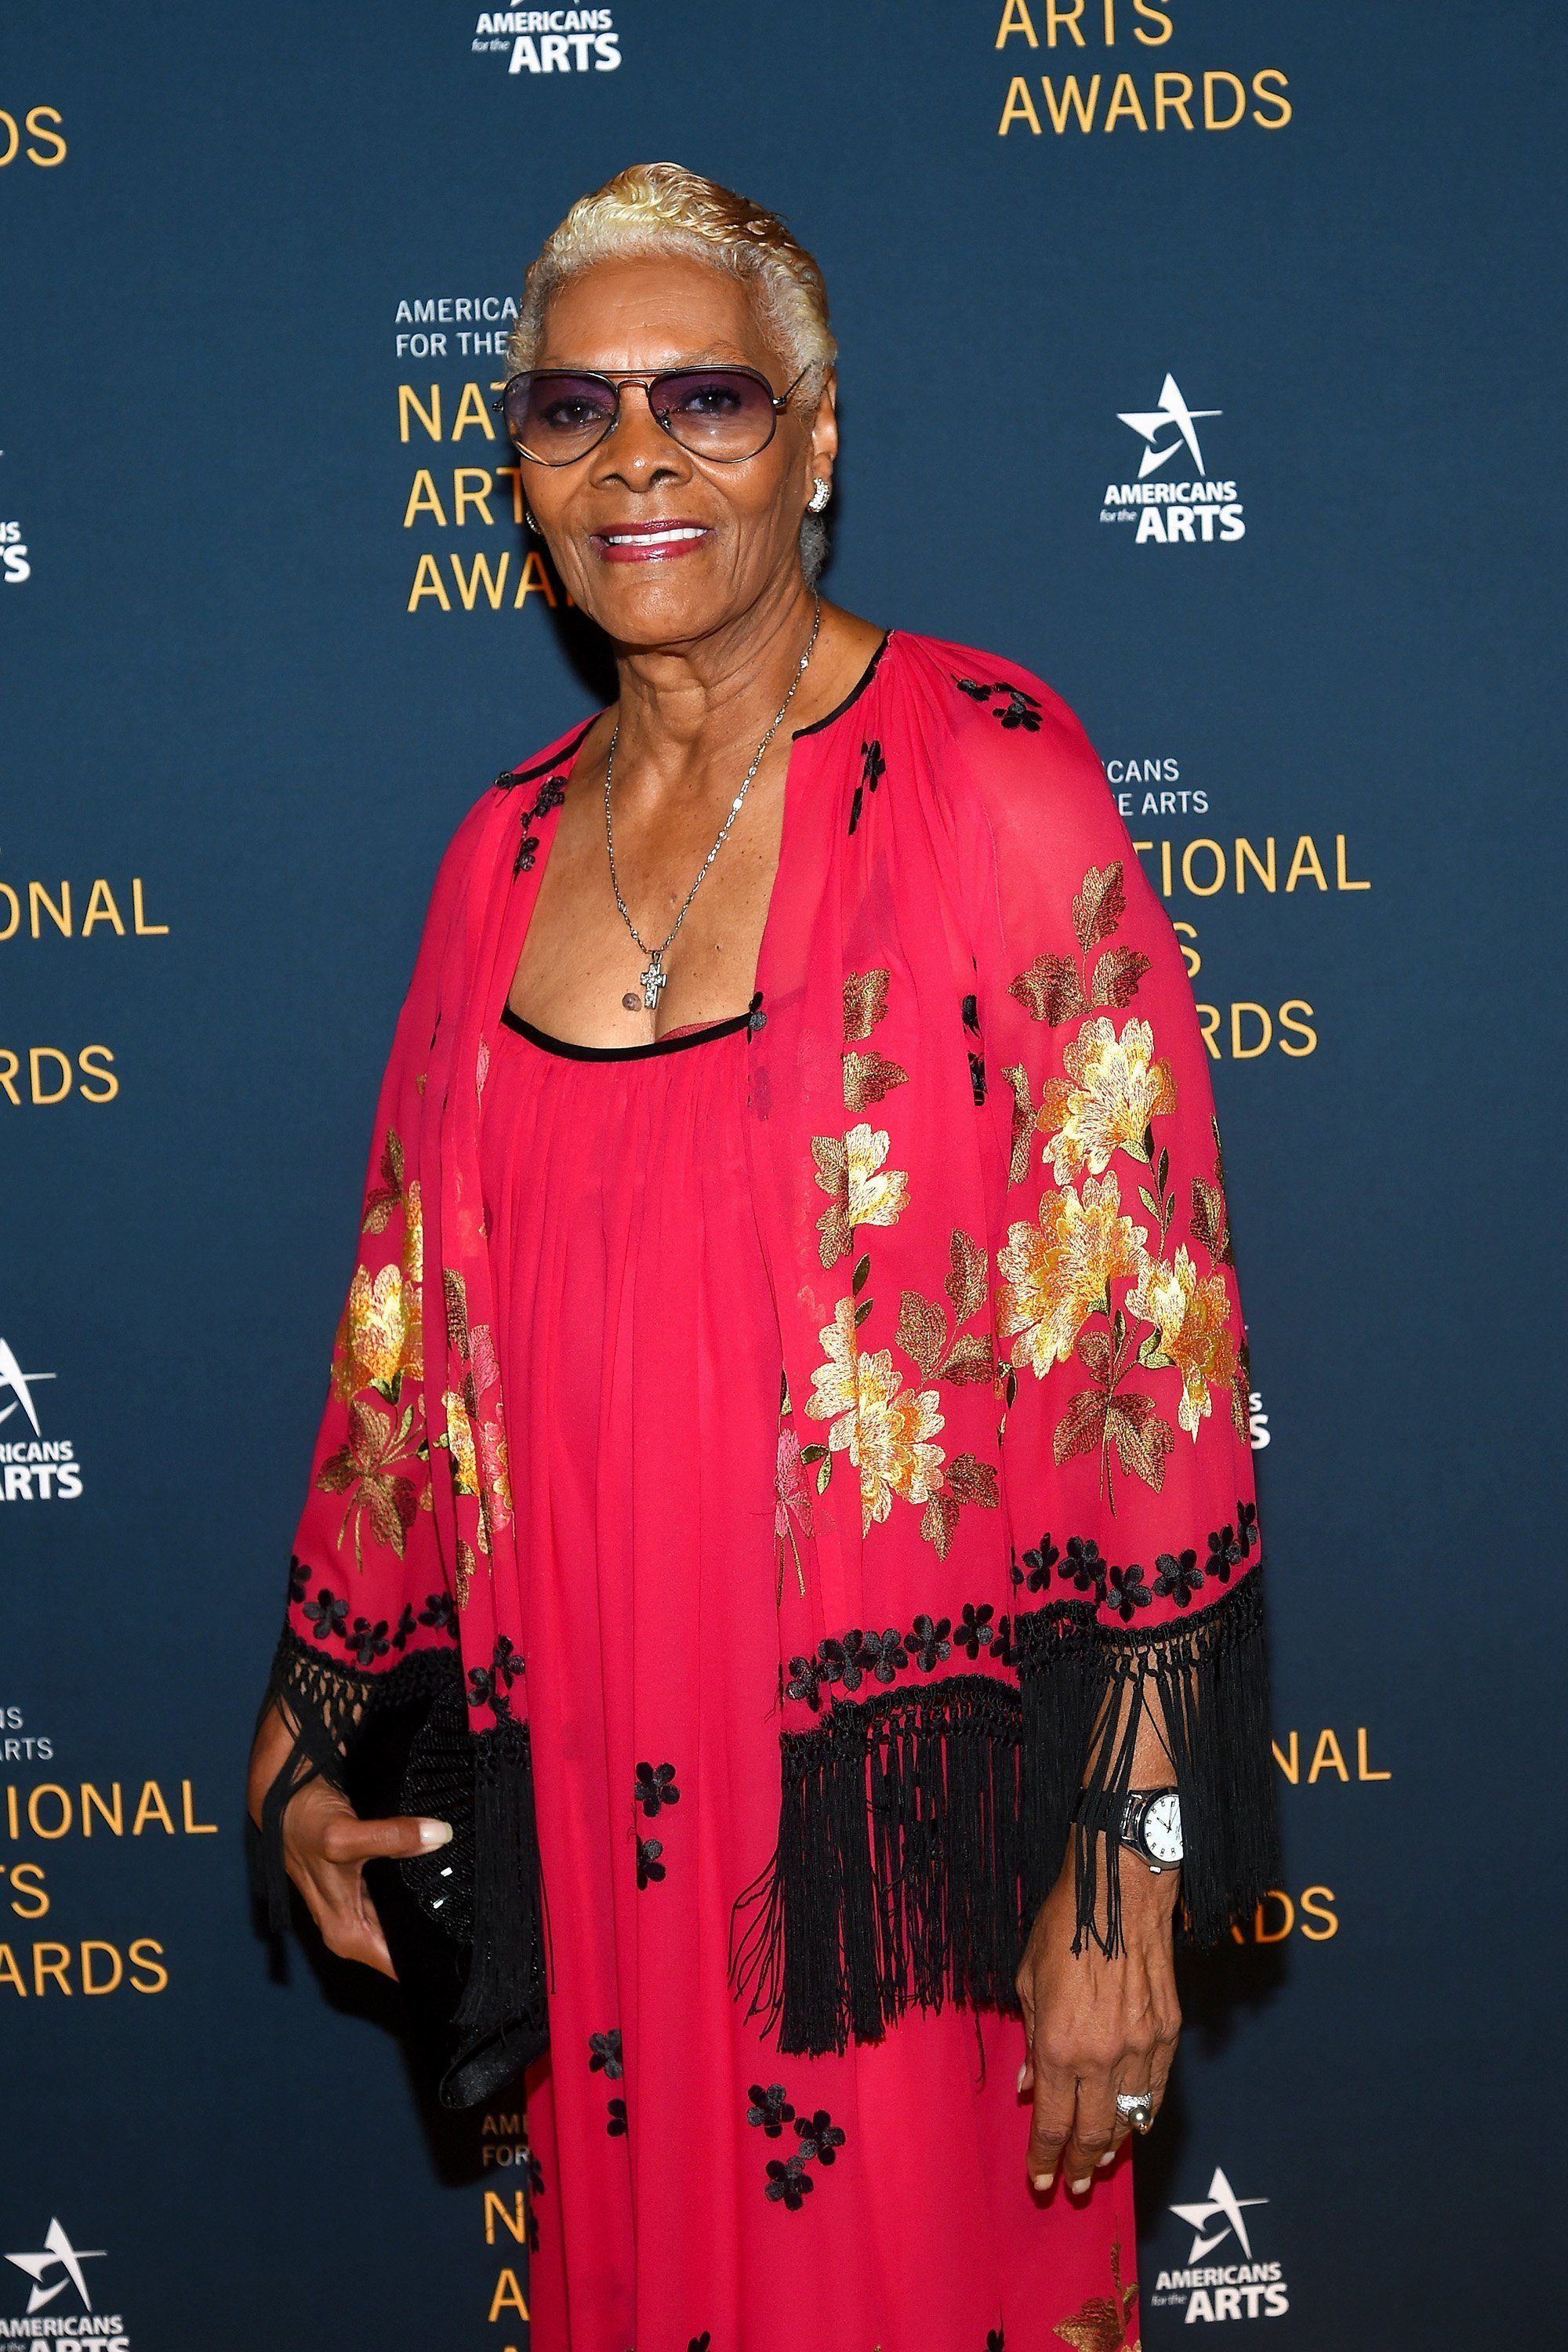 Dionne Warwick at the National Art Awards in October 2017 | Source: Getty Images/GlobalImagesUkraine